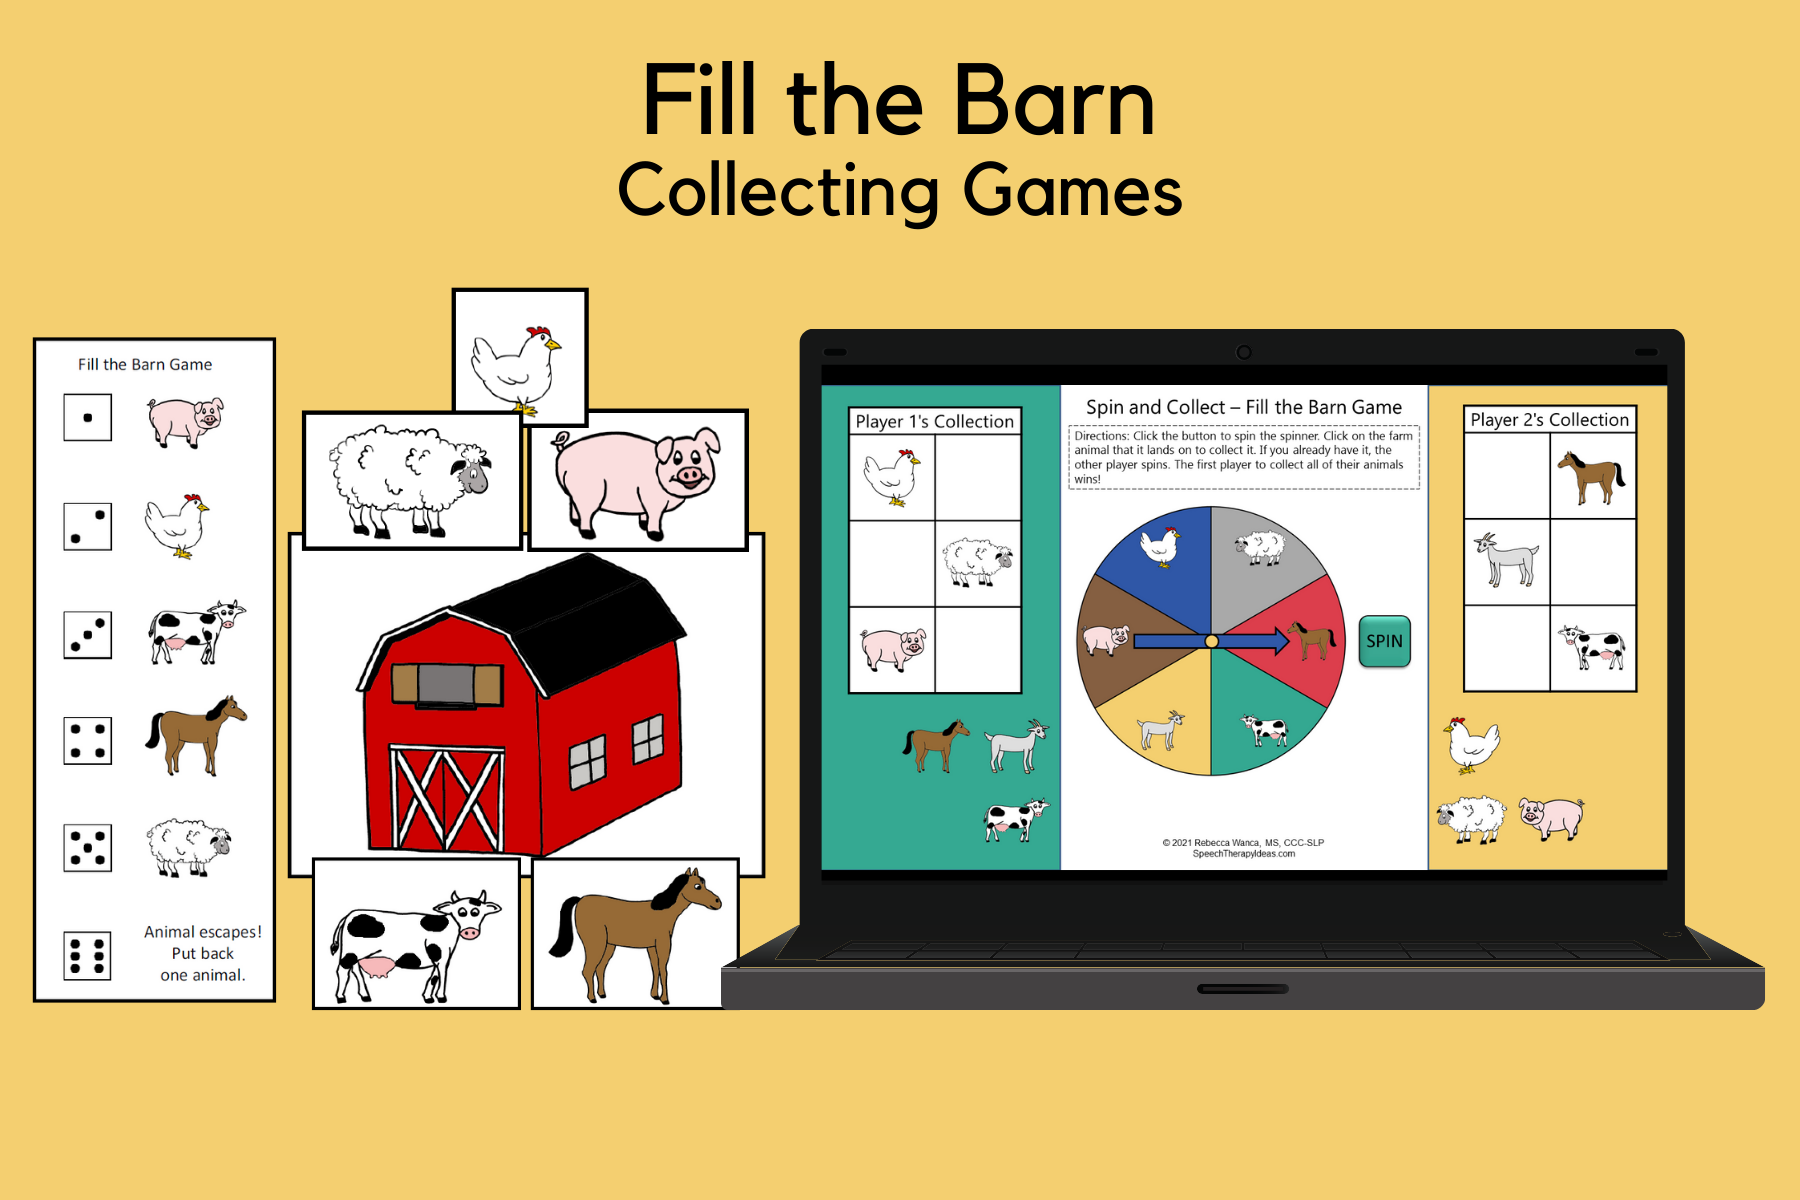 Fill the Barn Collecting Games